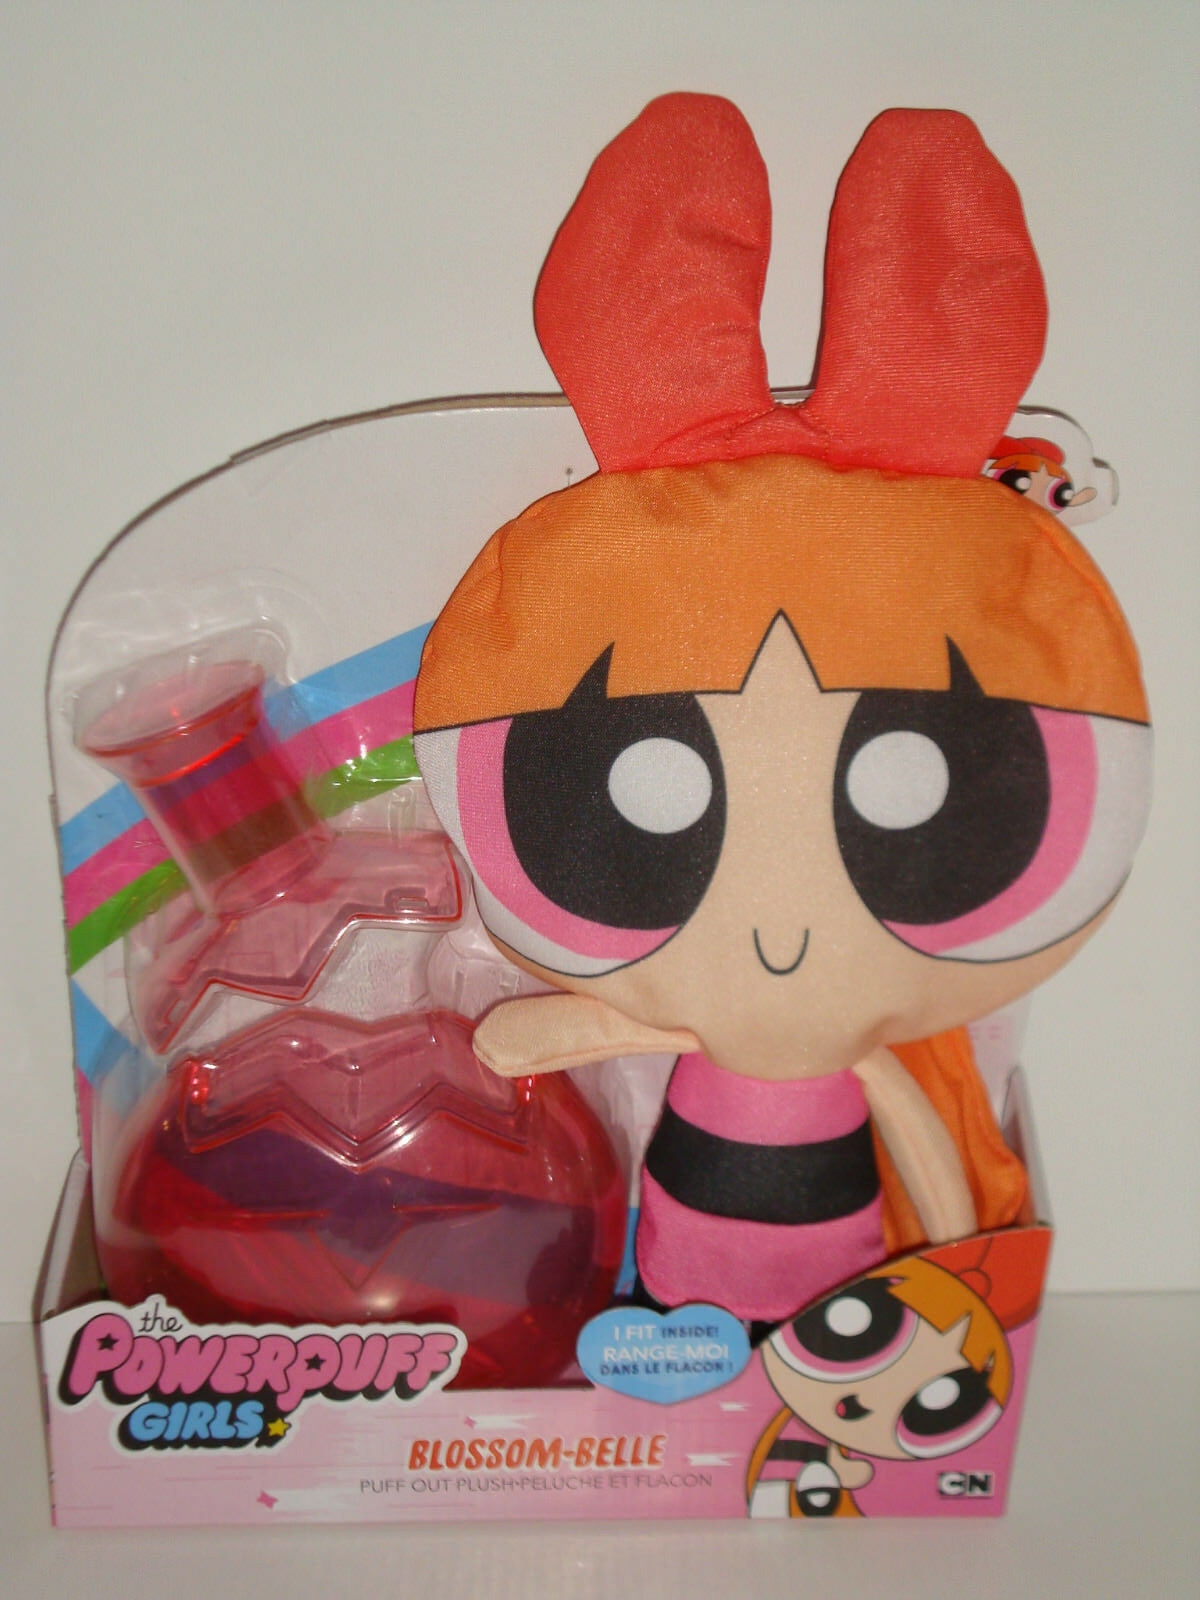 THE POWERPUFF POWERPUFF POWERPUFF GIRLS - BLOSSOM-BELLE PUFF OUT PLUSH db3036